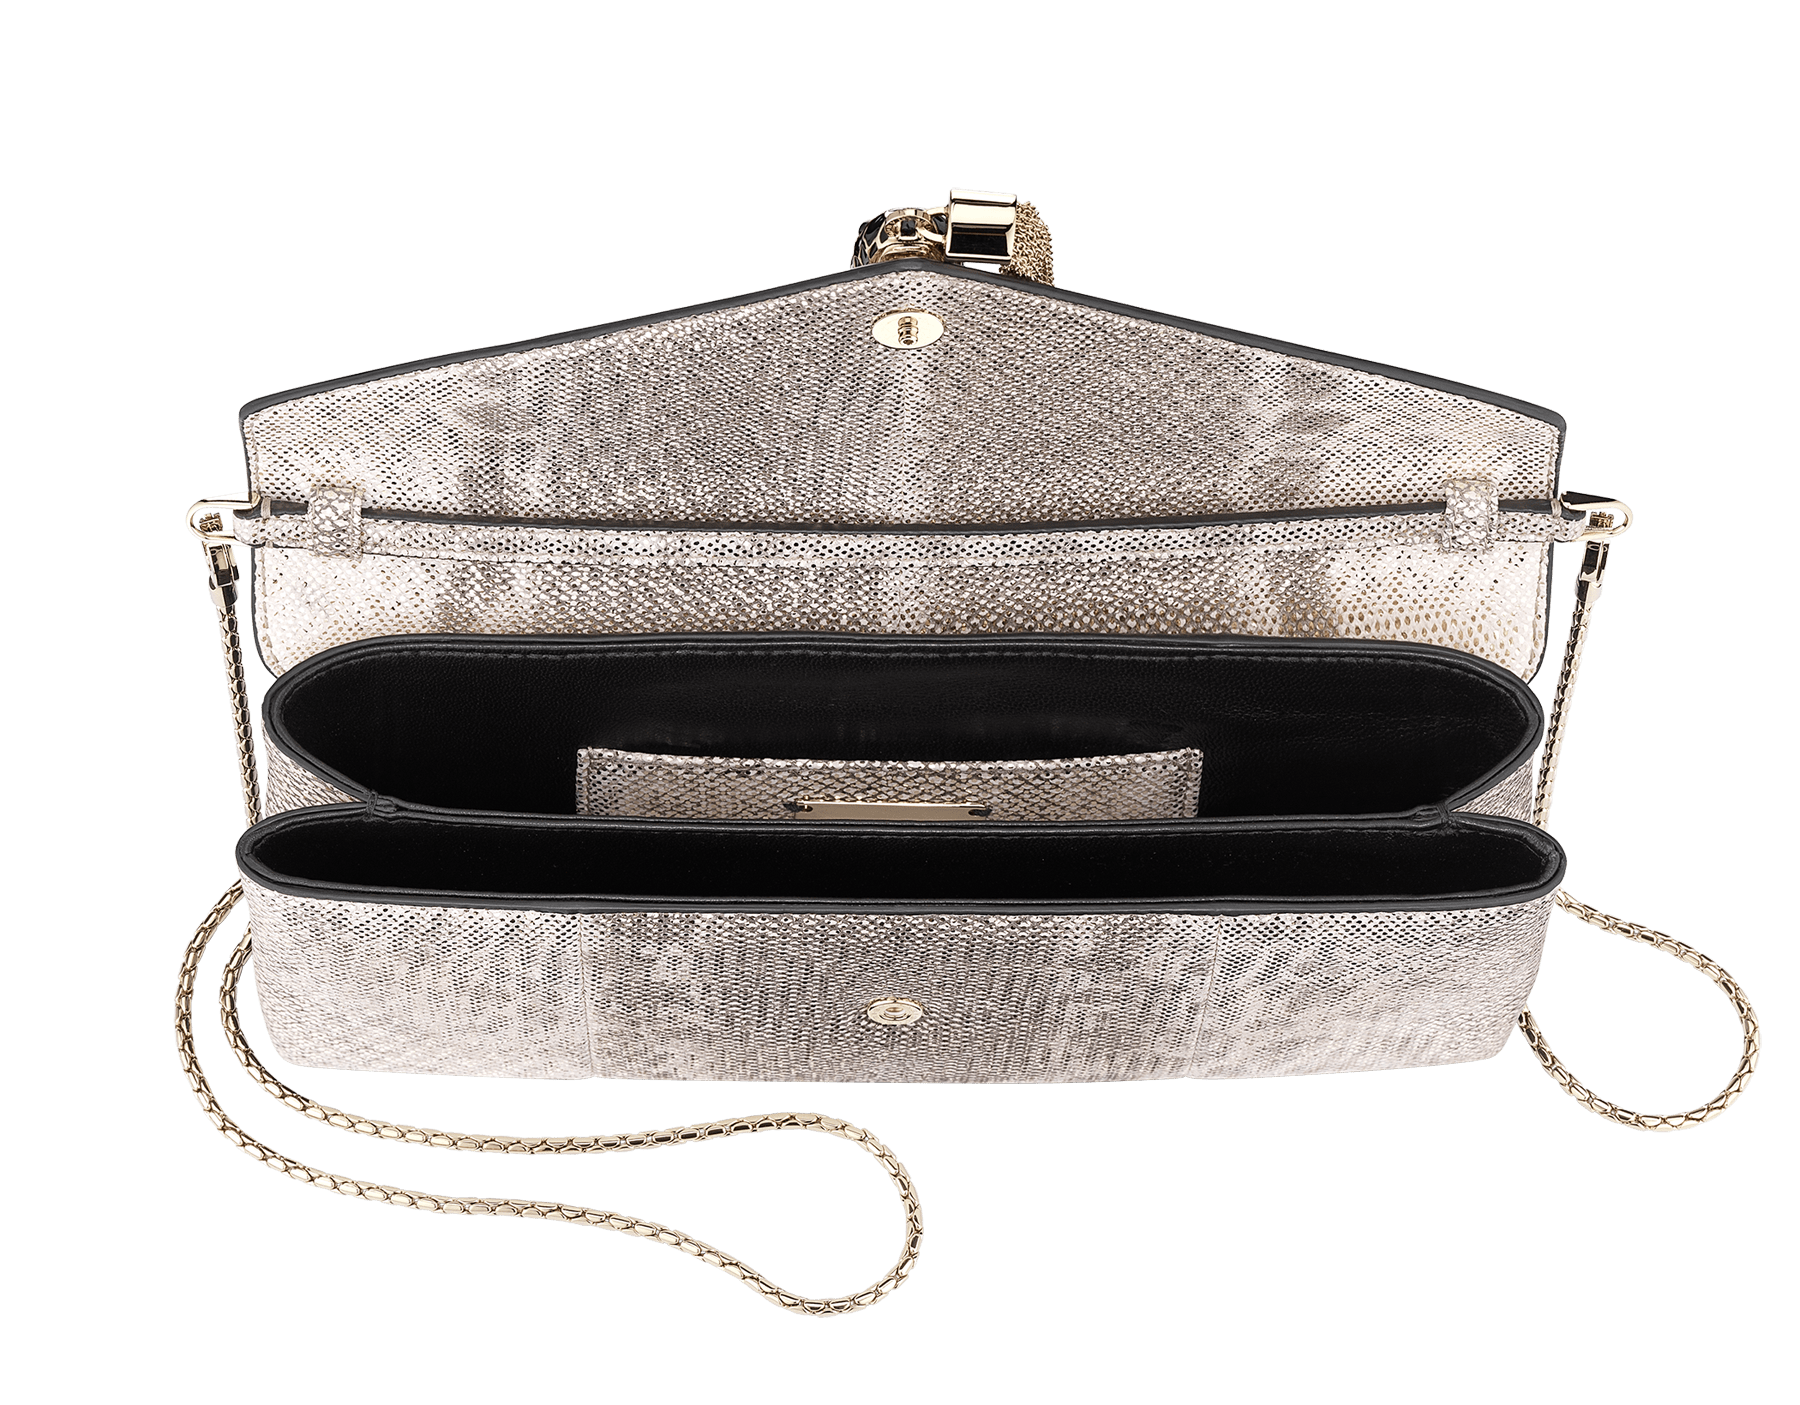 Serpenti evening clutch in milky opal metallic karung skin. Snakehead stud closure with tassel in light gold plated brass and top decorated with black and glitter milky opal enamel, and black onyx eyes. 526-001-0817S-MK image 4